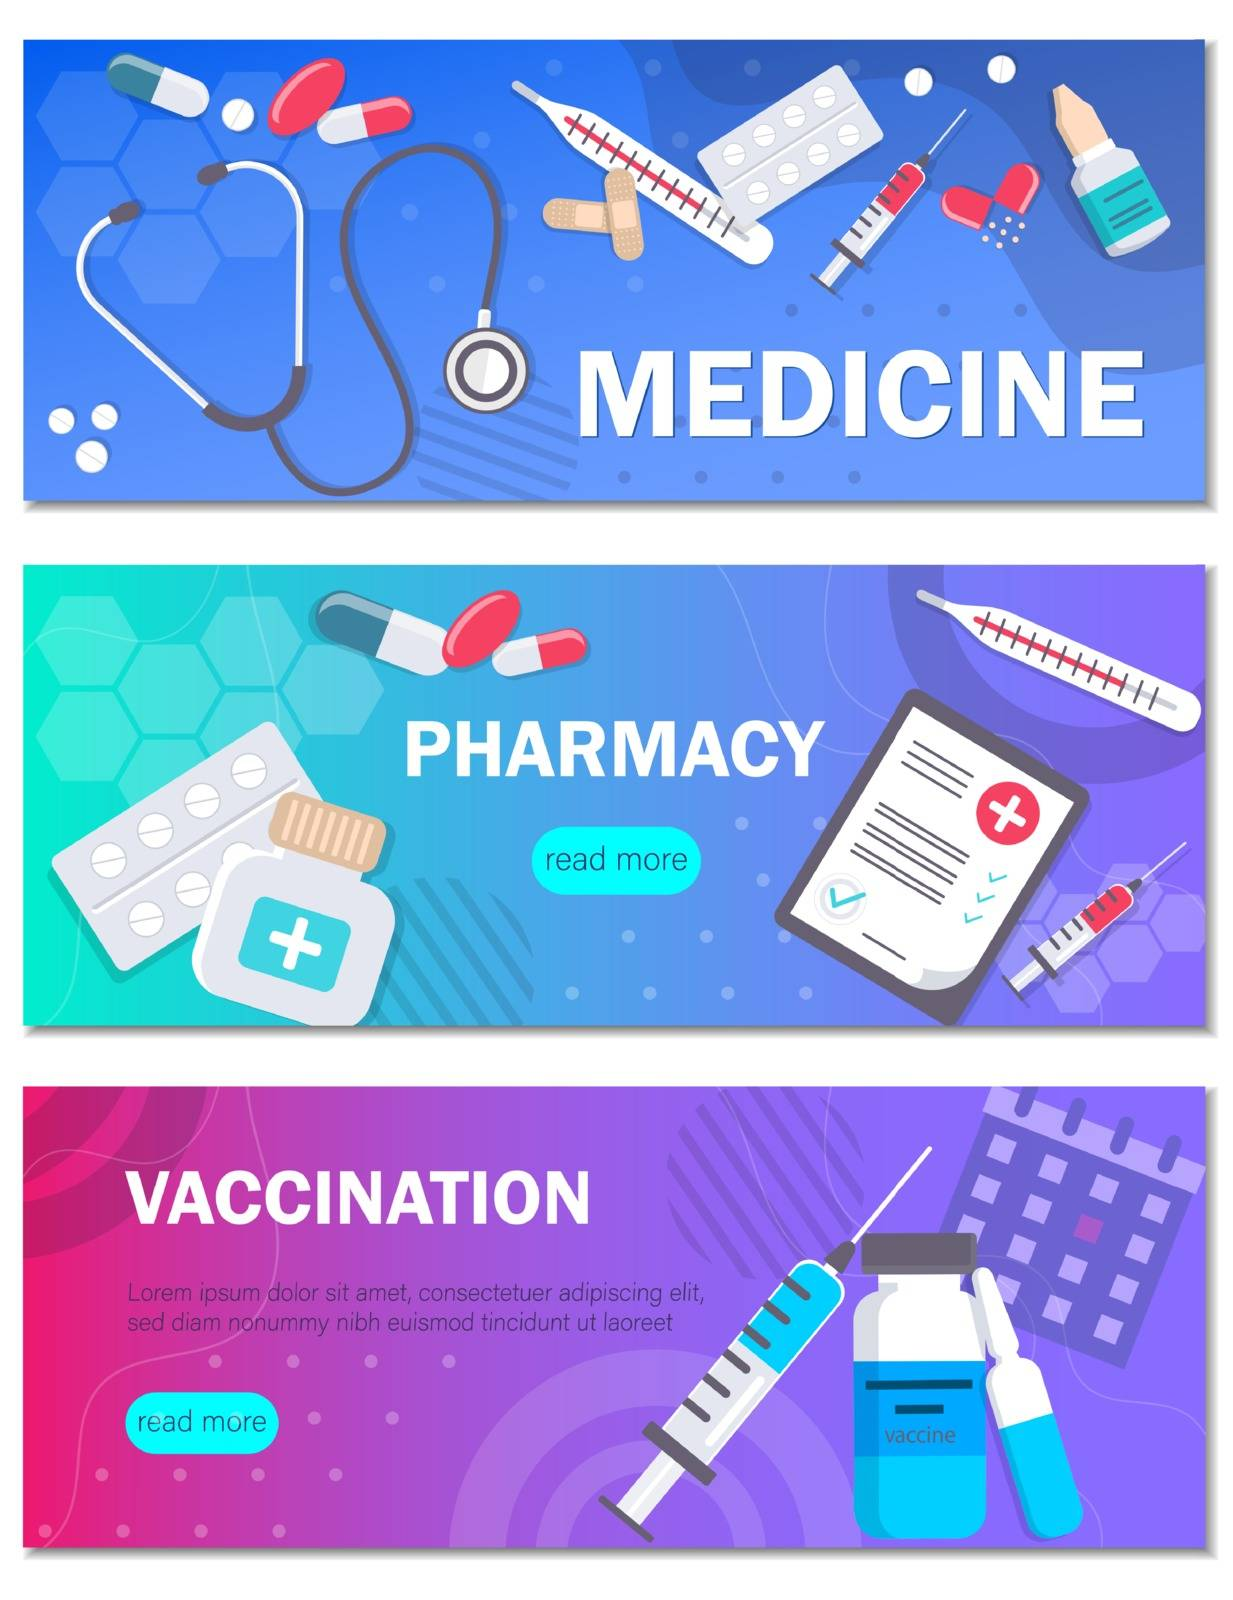 Pharmacy and vaccination concept templates for horizontal web banners . Can use for backgrounds, infographics, hero images. Health Medical Flat modern vector illustration by Helenshi